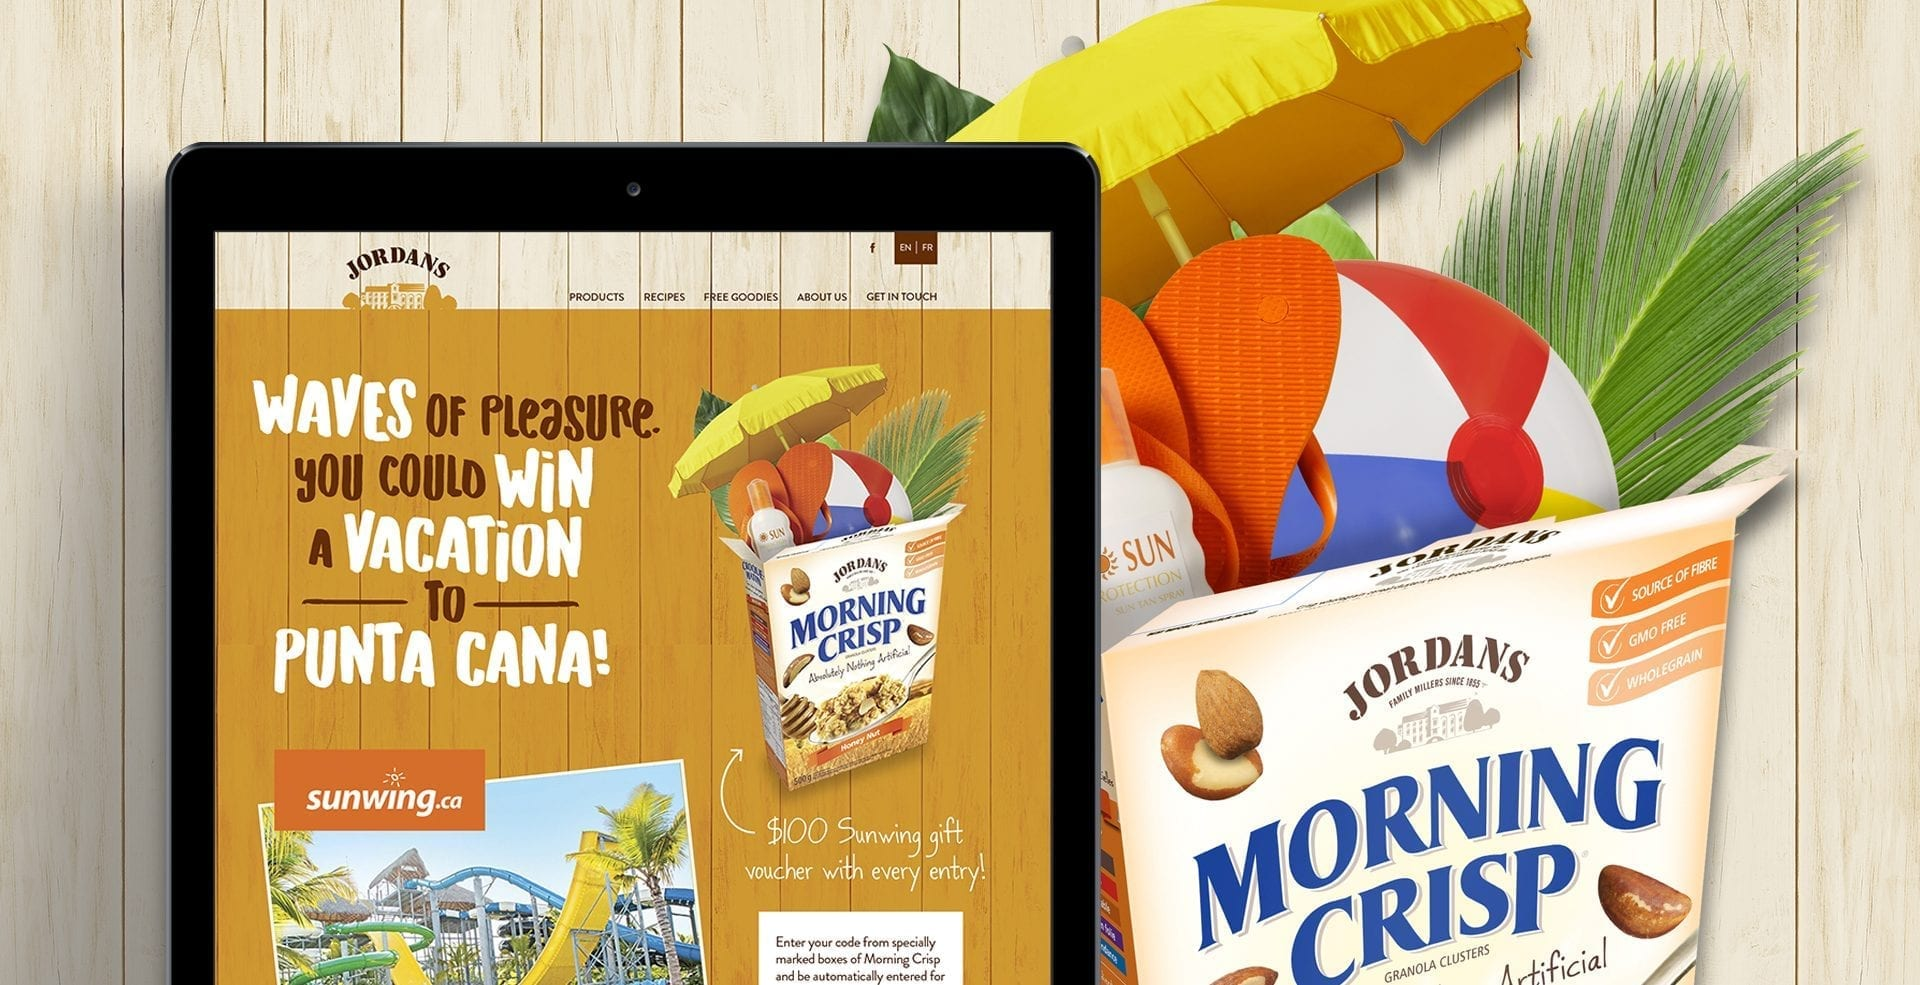 Jordans Morning Crisp and Sunwing Vacations giveaway mobile landing page